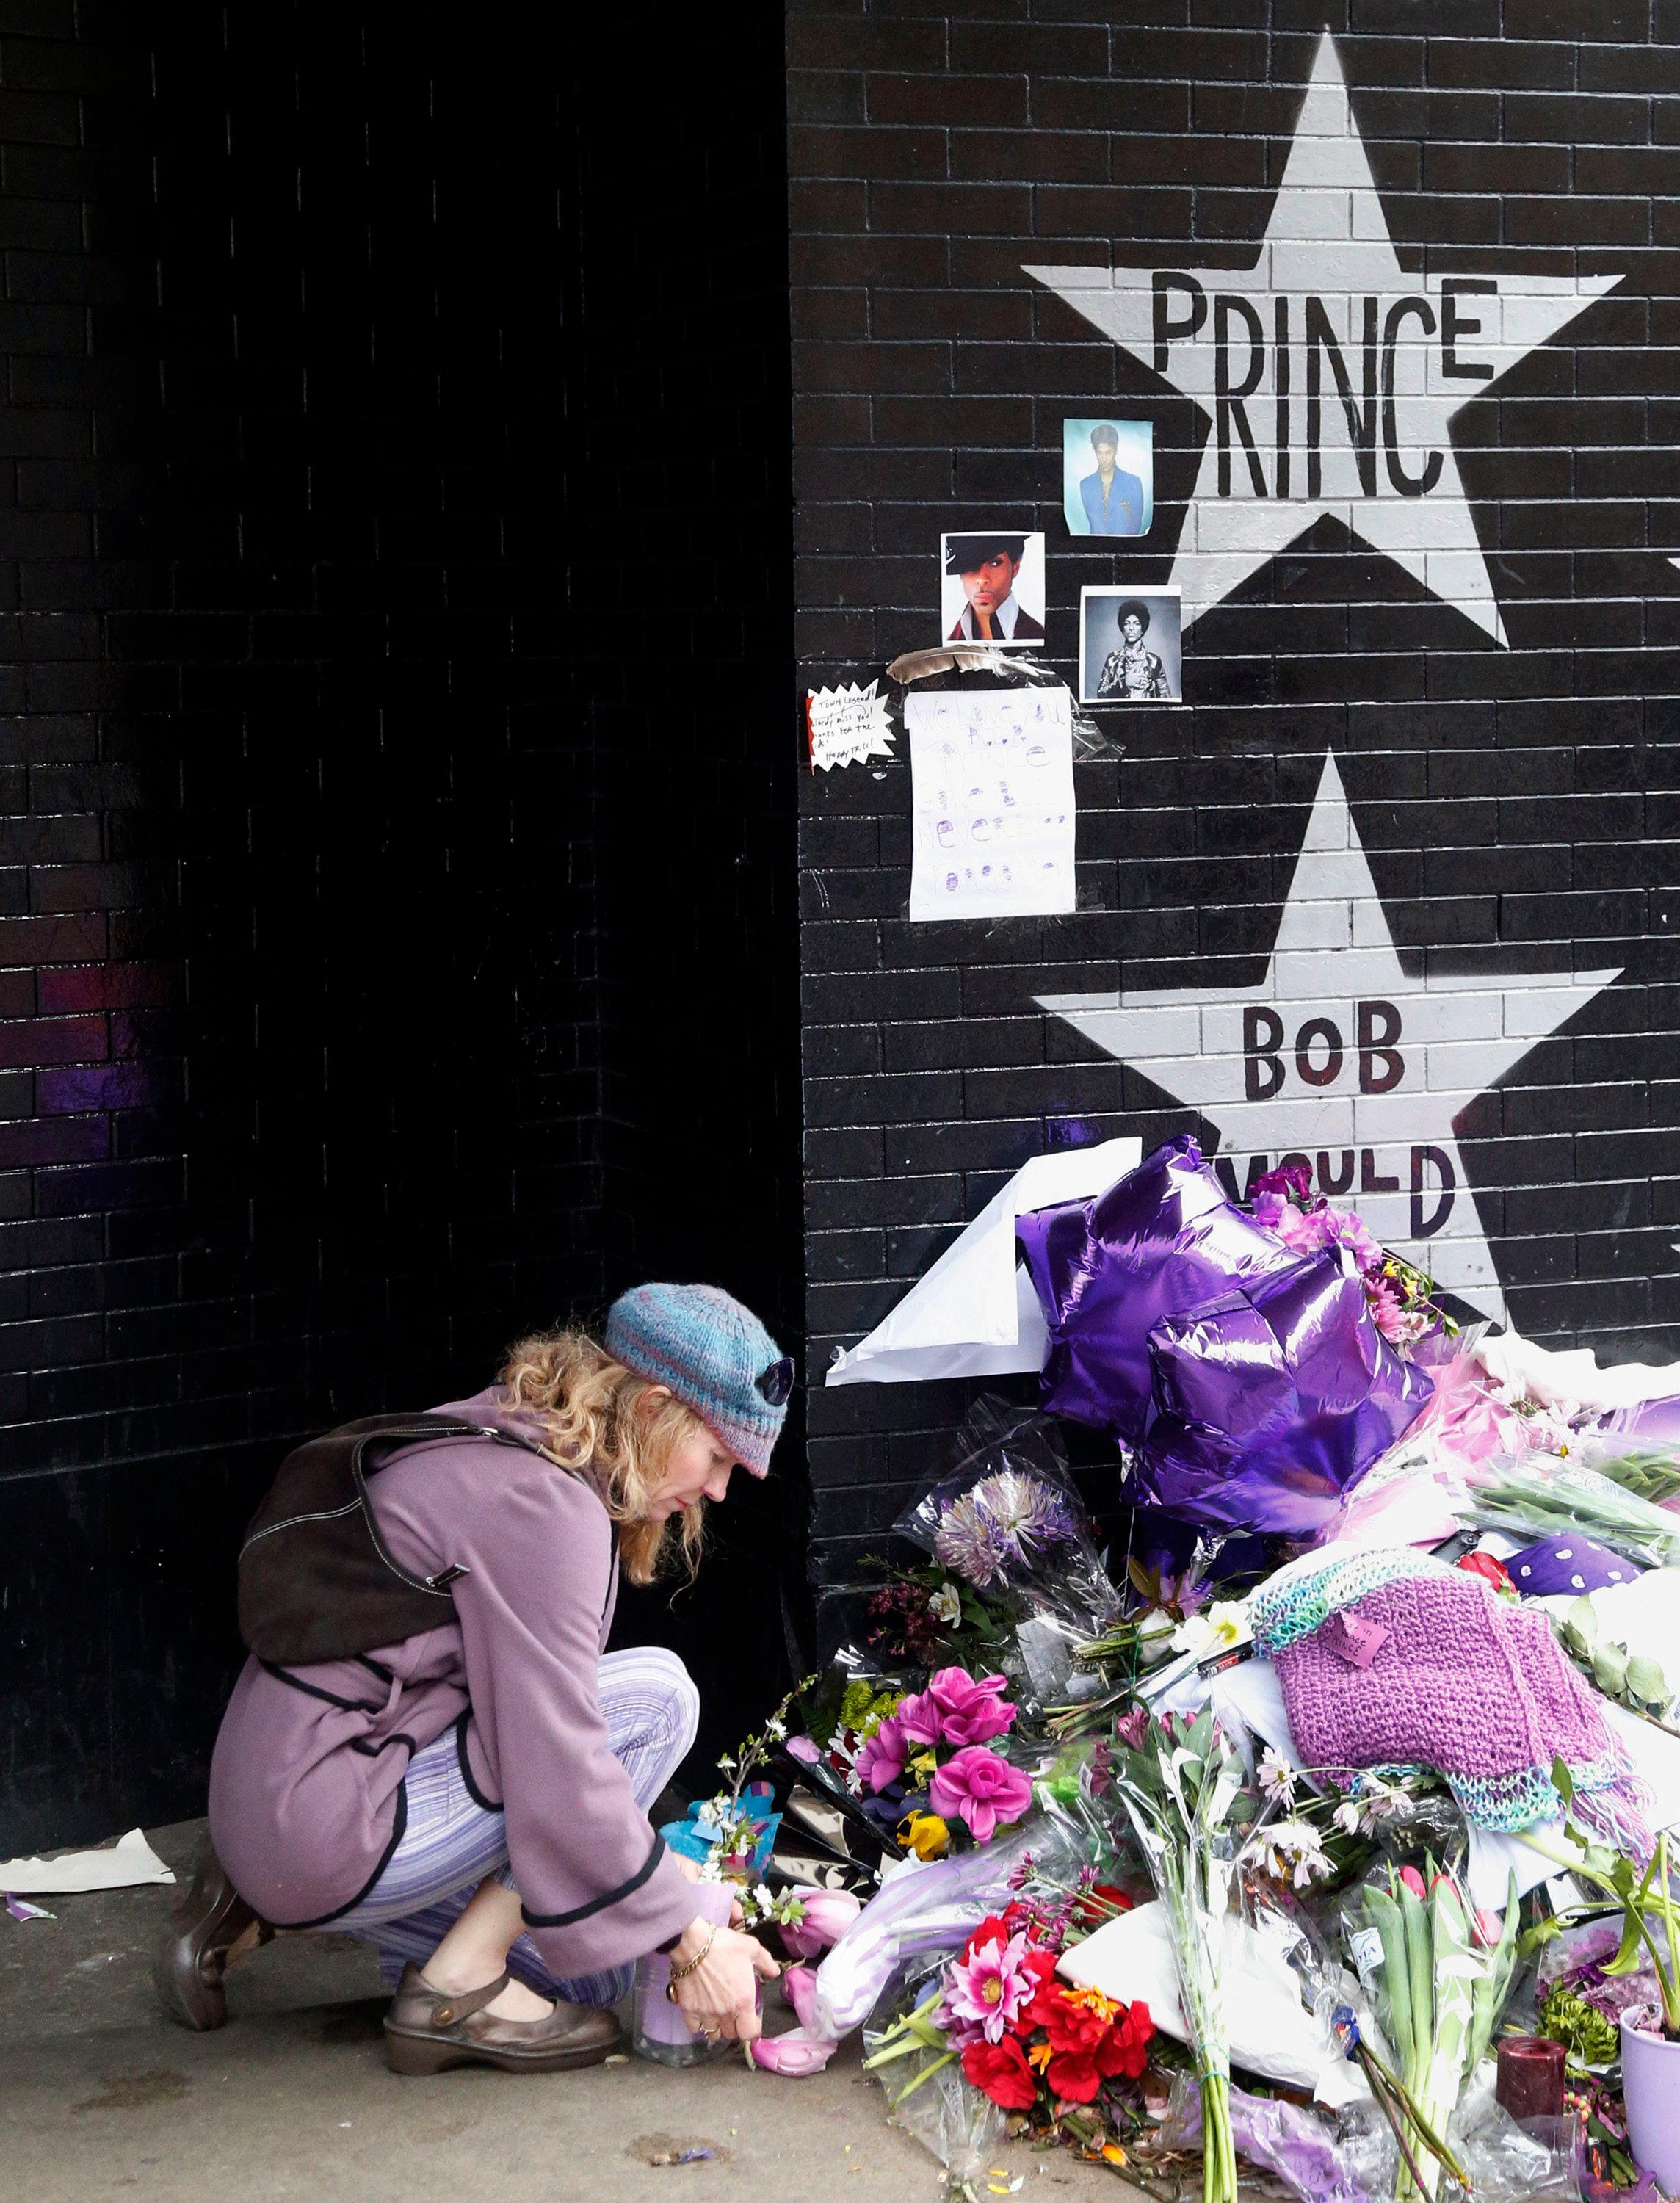 "FILE - In this April 22, 2016 file photo, a woman places flowers at a memorial at First Avenue in Minneapolis where pop super star Prince often performed. At his home and recording studio-turned-museum, a full four days of events are on tap for the one-year anniversary of his death on April 21, 2016, ranging from concert performances by the great one's former band mates to panel discussions on his legacy. Fans who can't afford those high-dollar tickets can head to a street party outside the club he made famous in ""Purple Rain."" (AP Photo/Jim Mone, File)"